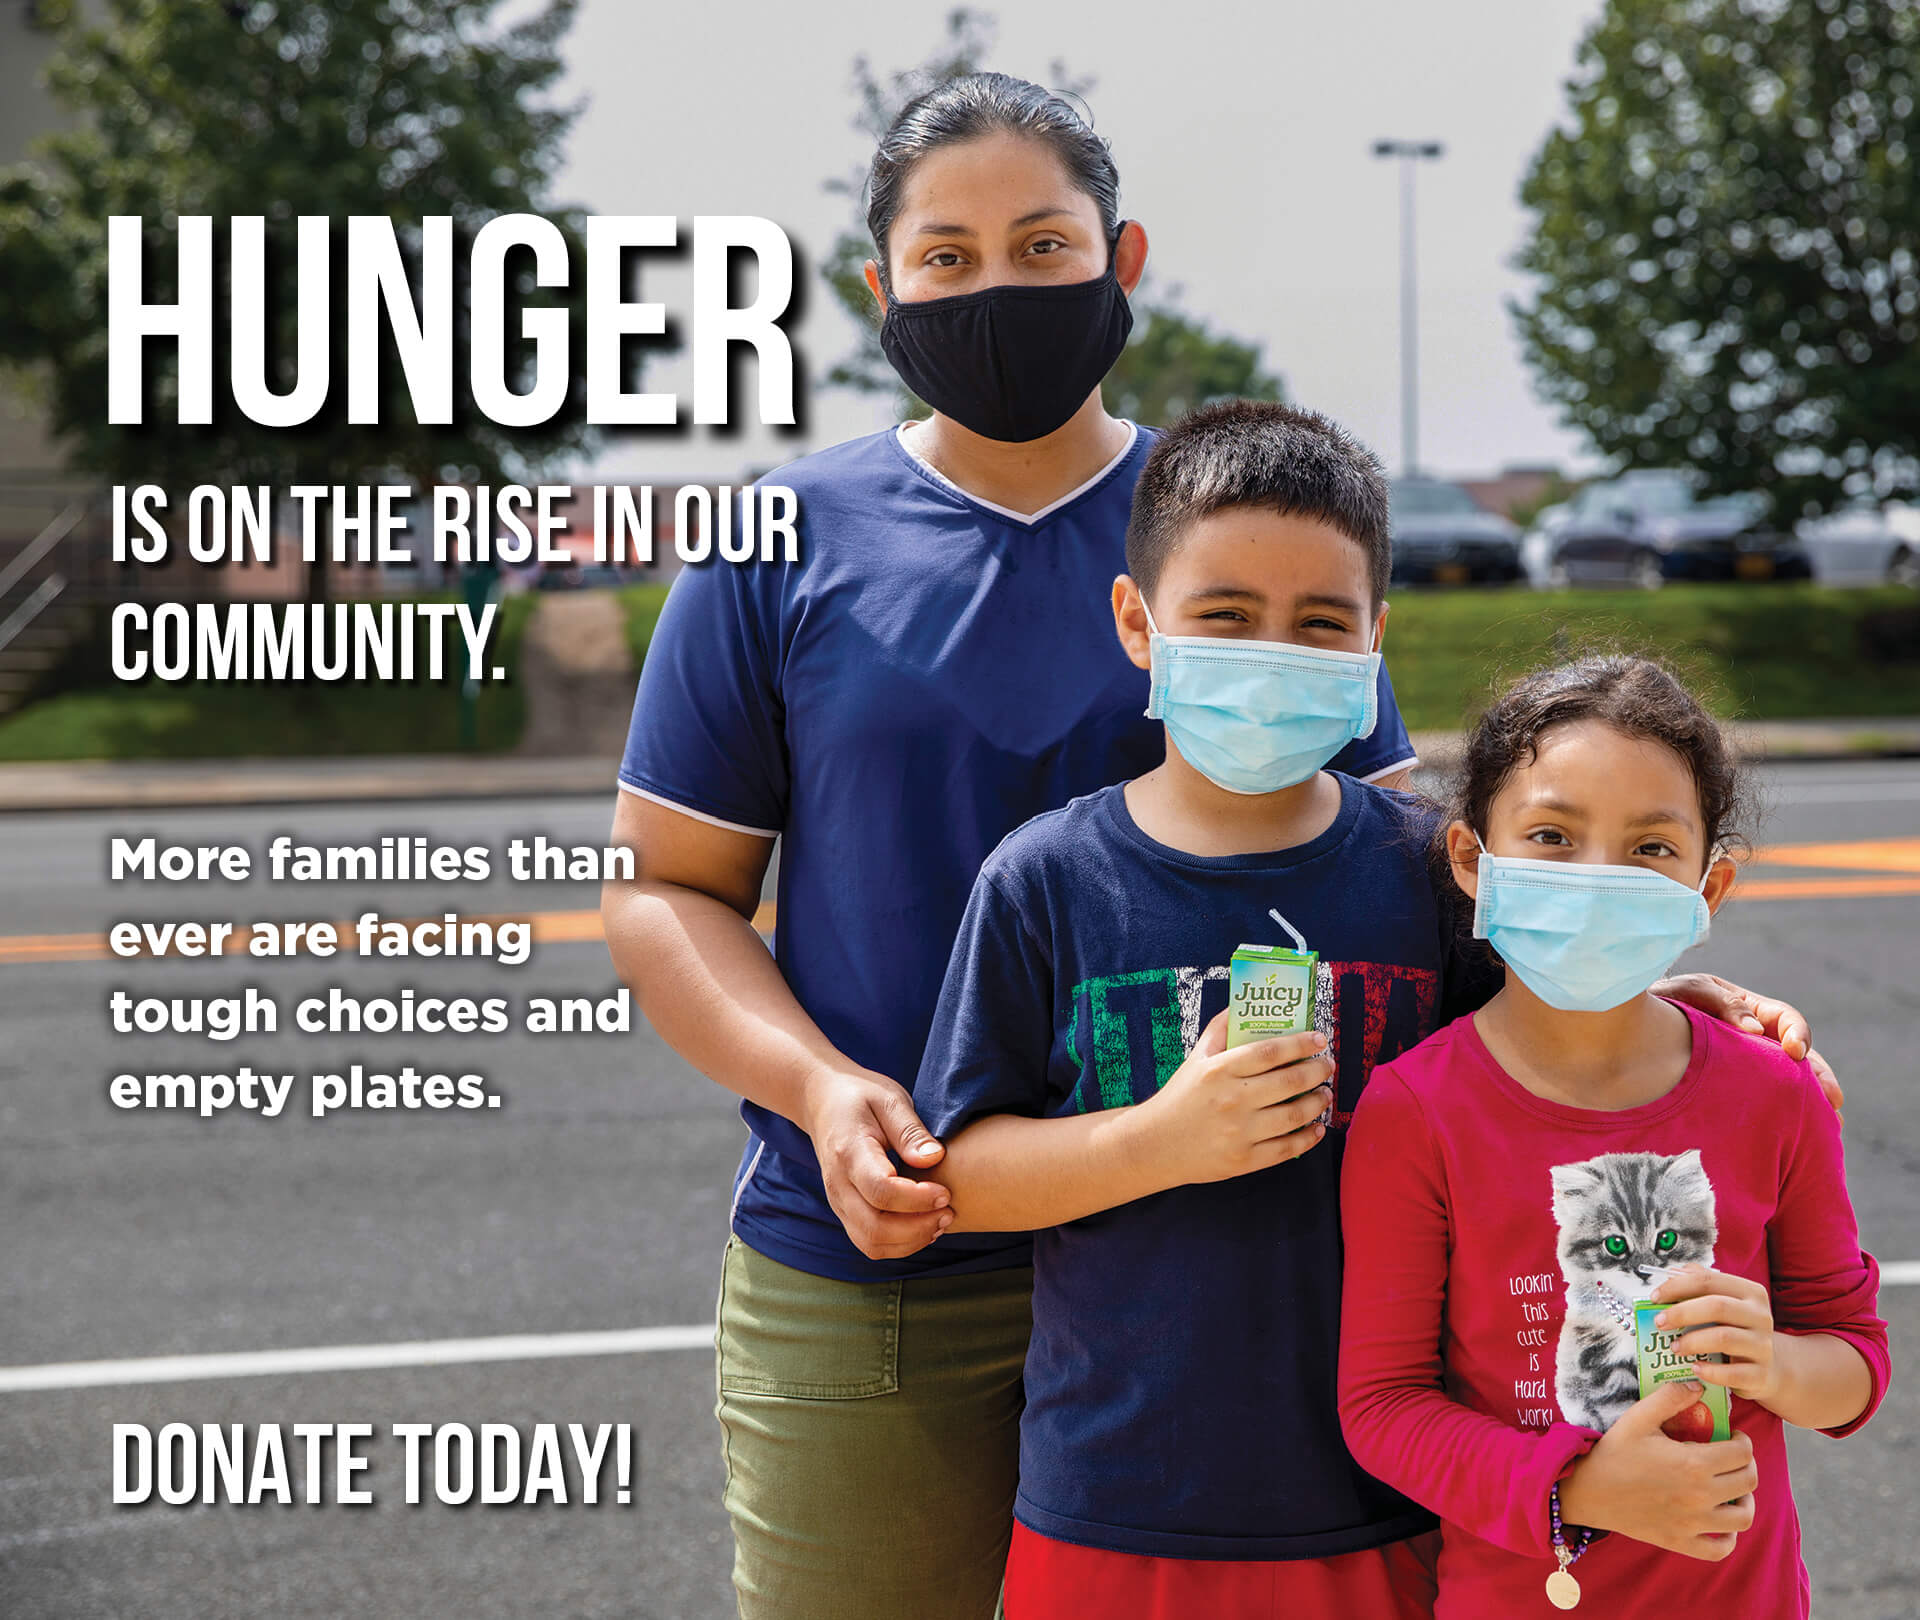 Hunger is on the rise in our community.